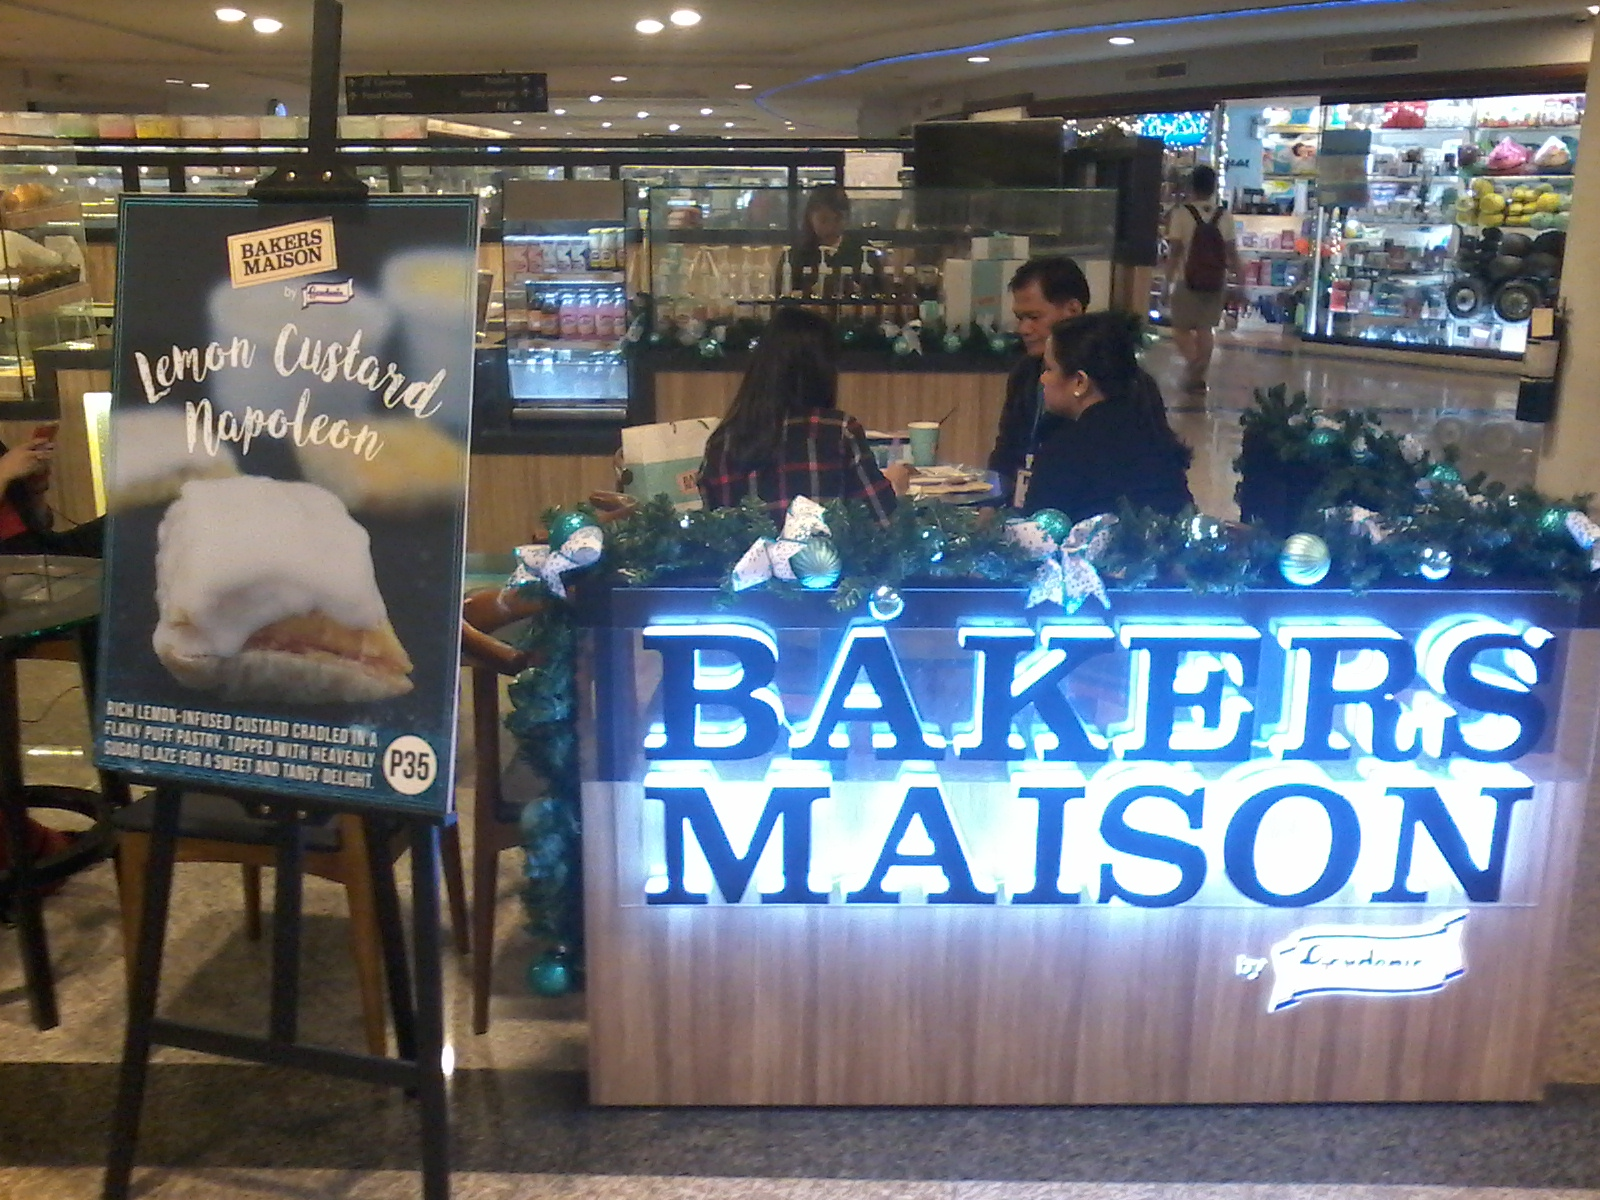 Bloggers association of the philippines bakers maison for Association maison